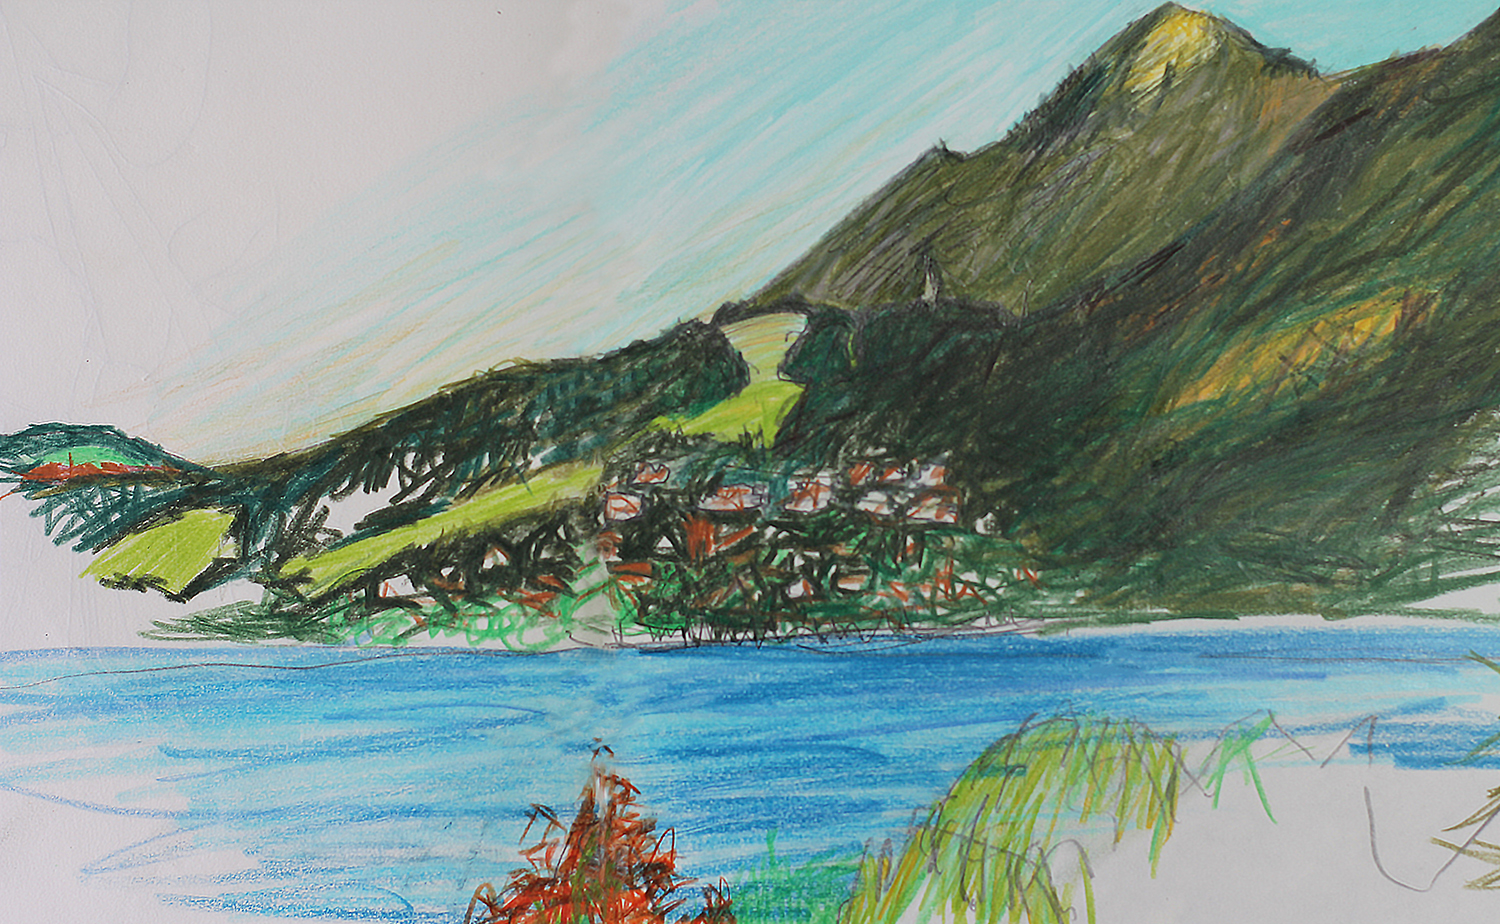 Pencil drawing, lake Annecy in France. Drawn across two pages of a large sketchbook in pencil, approx 18 inches across